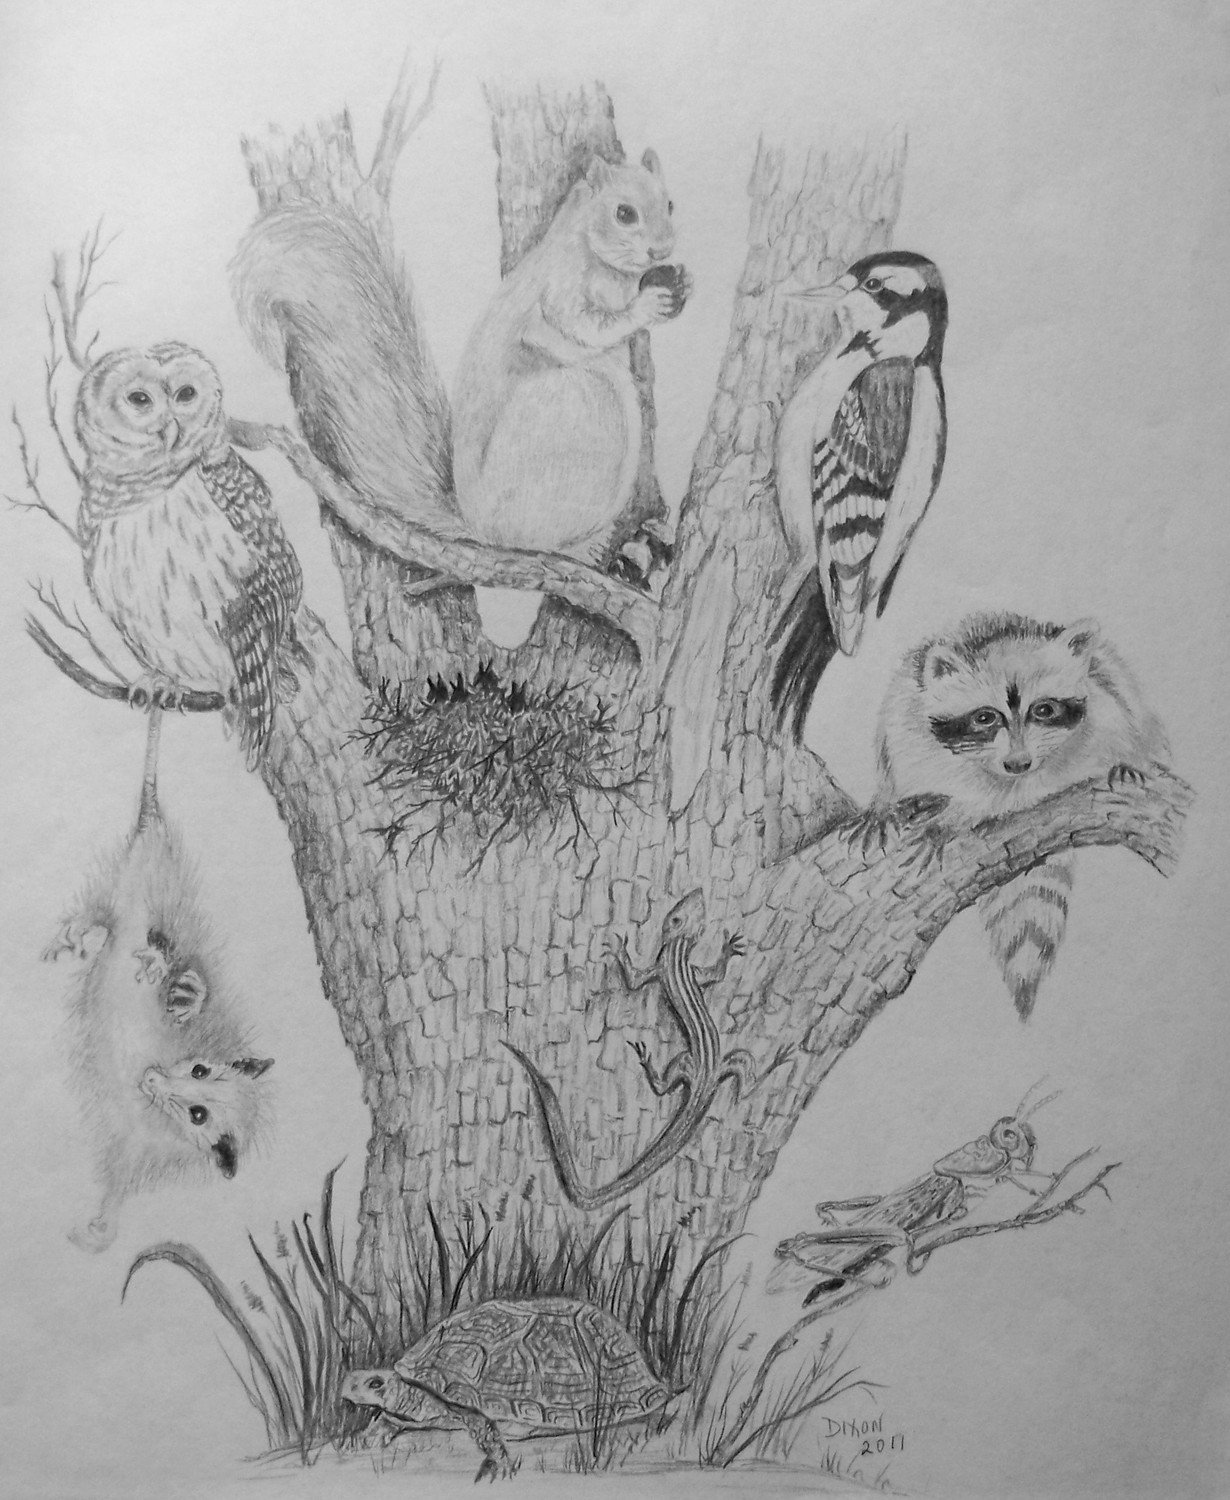 Drawn butterfly ever nature Nature of of with Animals